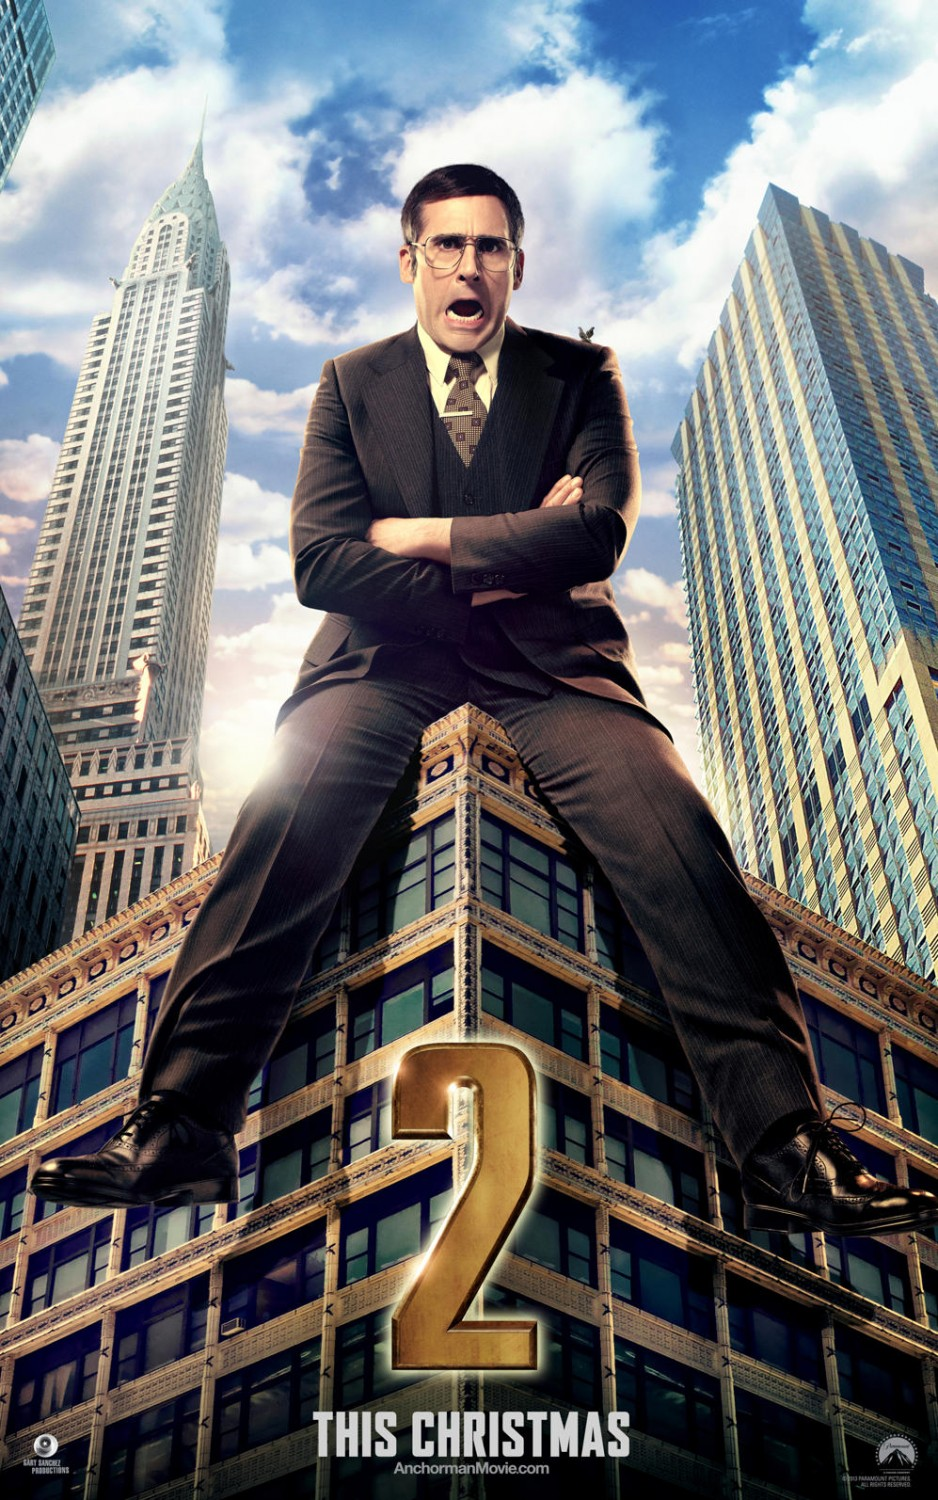 Anchorman 2 The Legend Continues-Official Poster Banner PROMO CHAR XLG-05NOVEMBRO2013-01